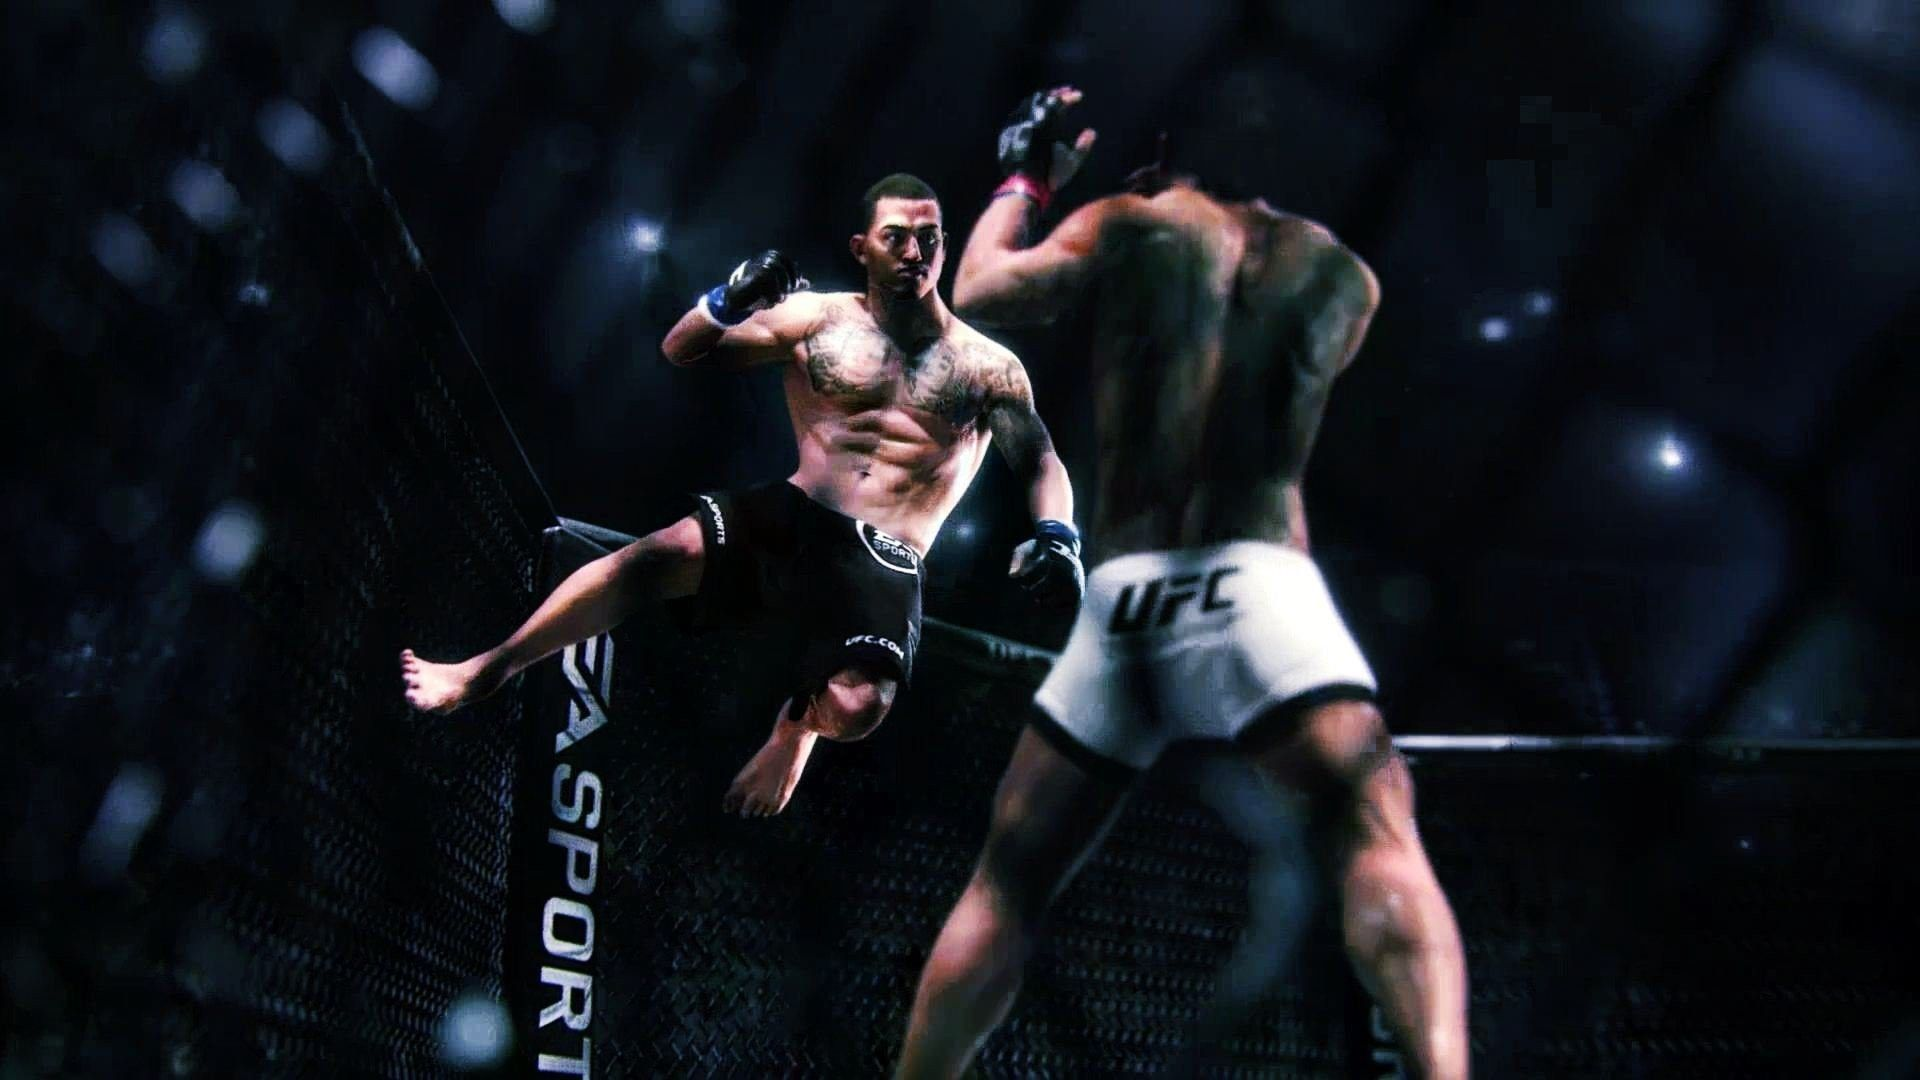 Mma wallpapers top free mma backgrounds wallpaperaccess - Free ufc wallpapers ...